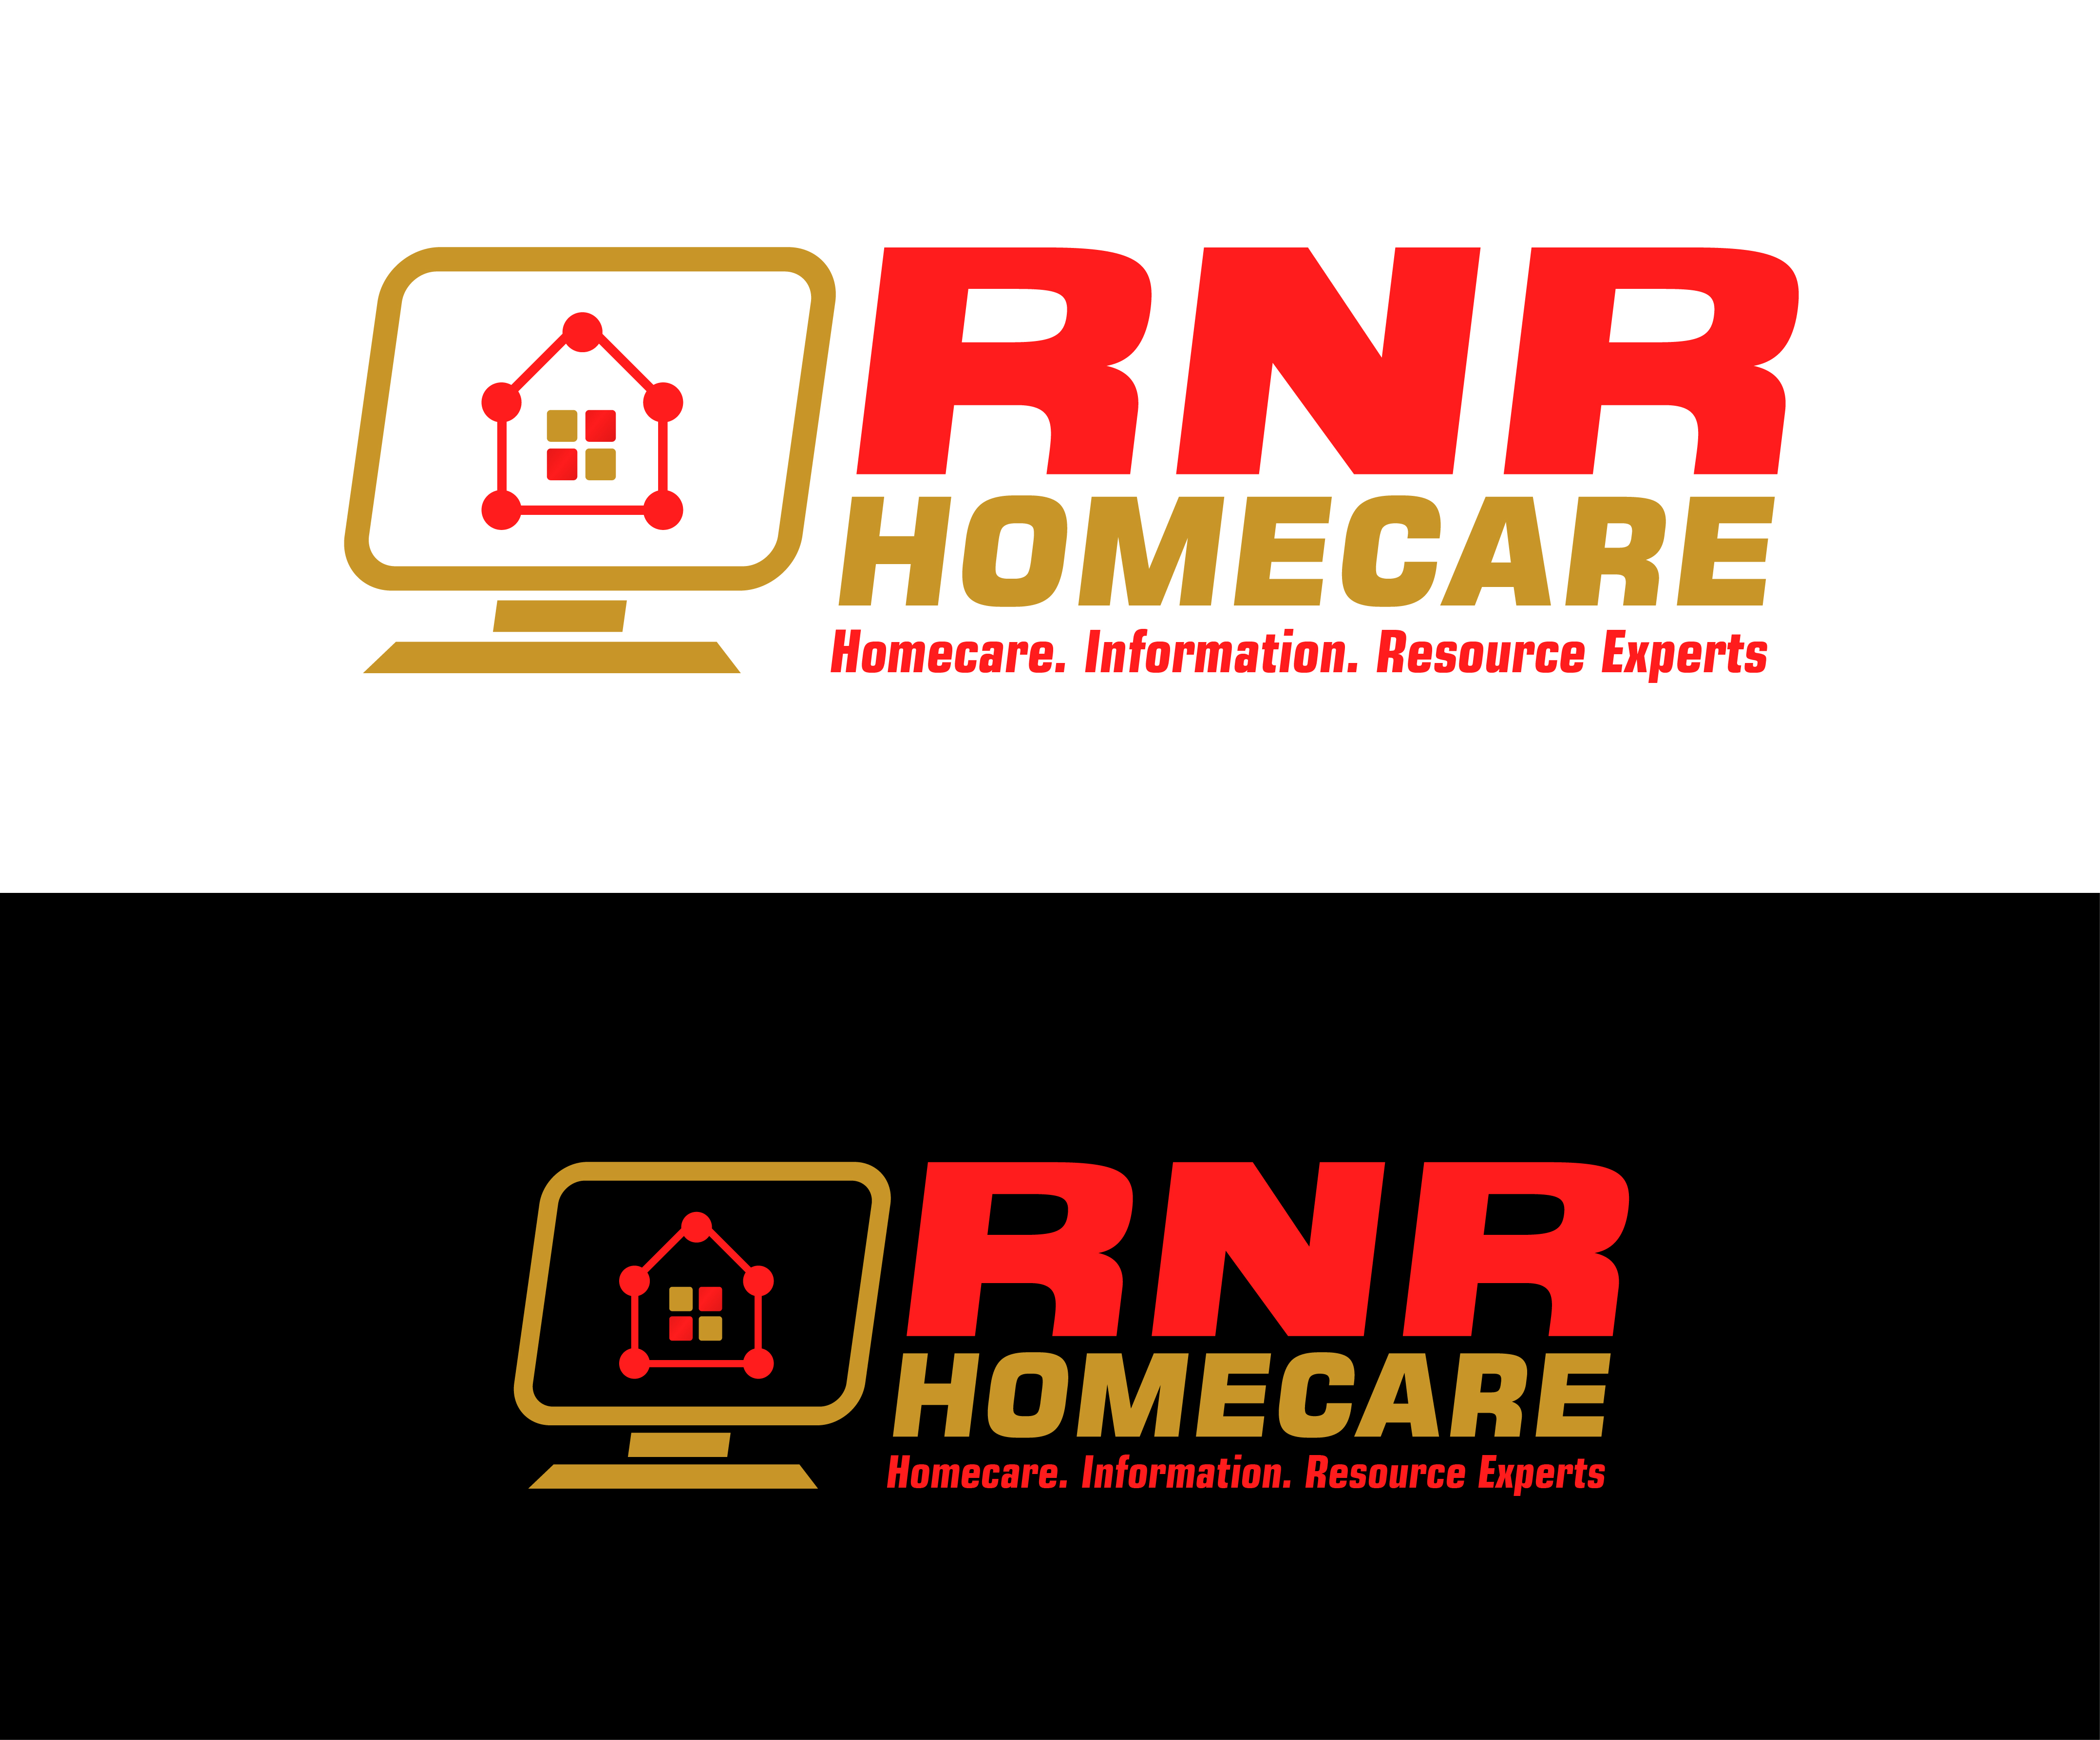 Logo Design by 3draw - Entry No. 126 in the Logo Design Contest Imaginative Logo Design for RNR HomeCare.